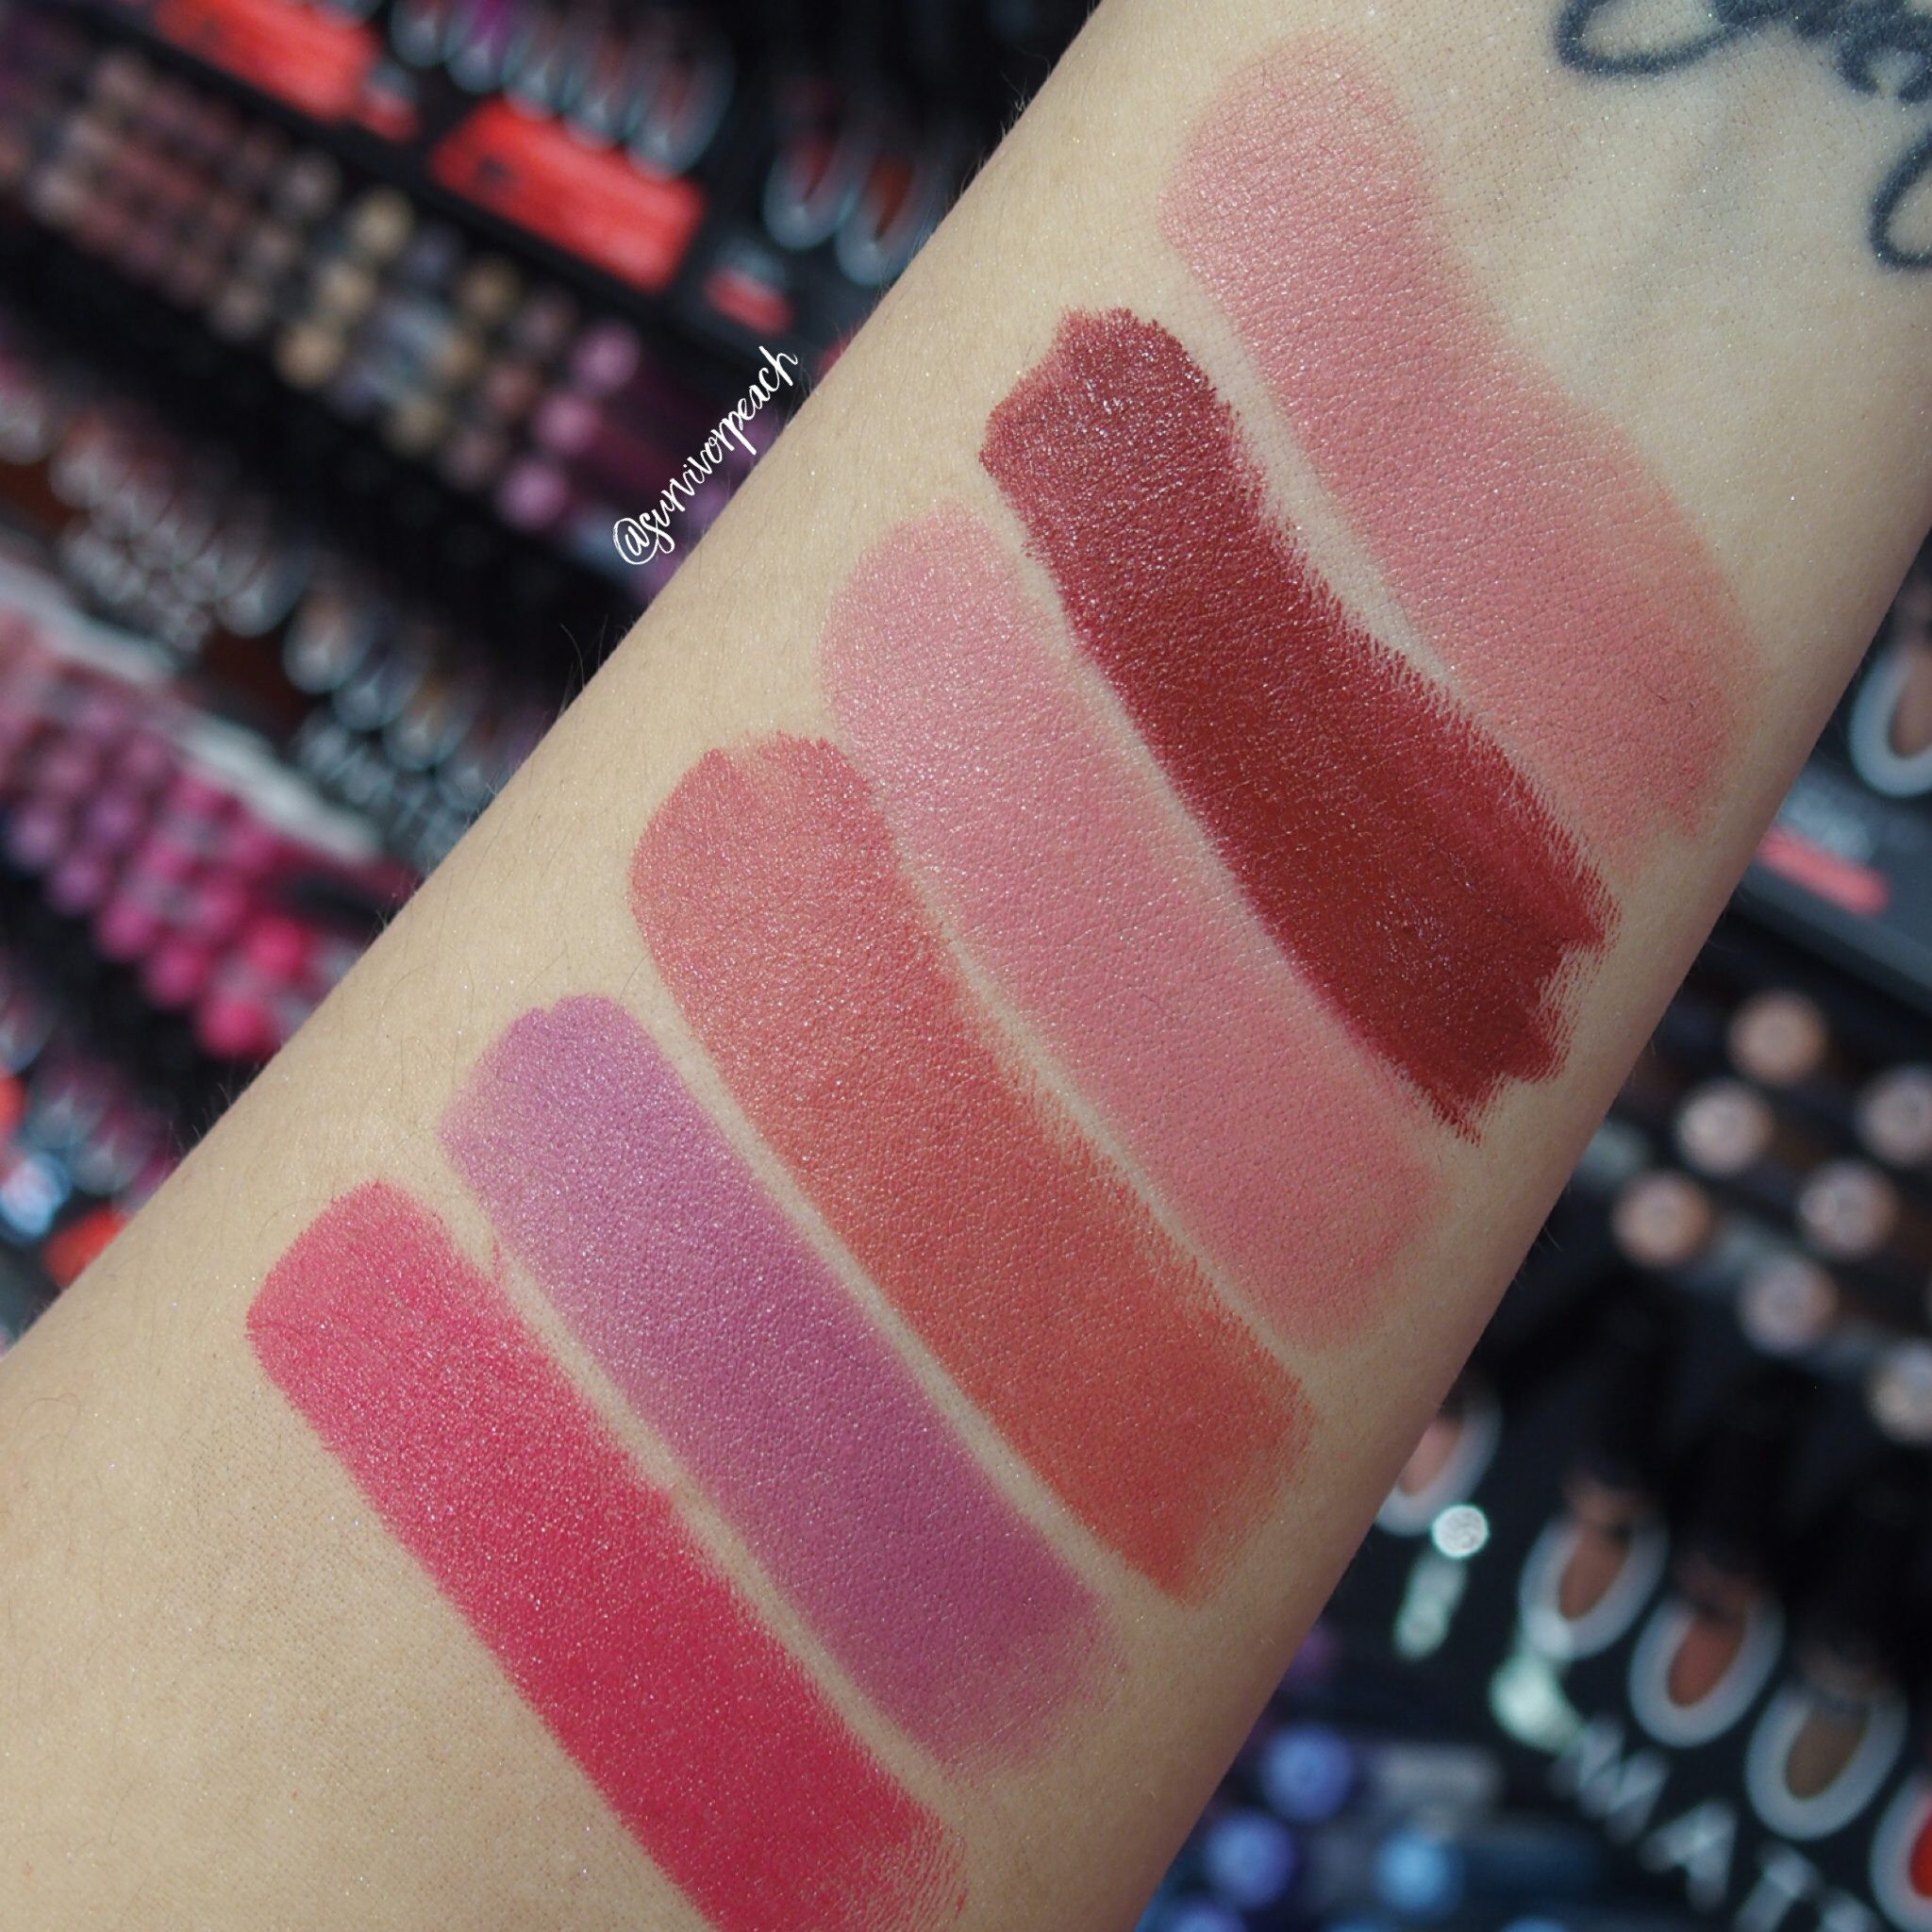 Sephora Collection Rouge Satin Lipstick swatches - S01 Let Me Dream, S02 Courtisane, S04 No Make Up, S05 Sunjkissed, S07 Bucket Kiss, S08 Drifting Away